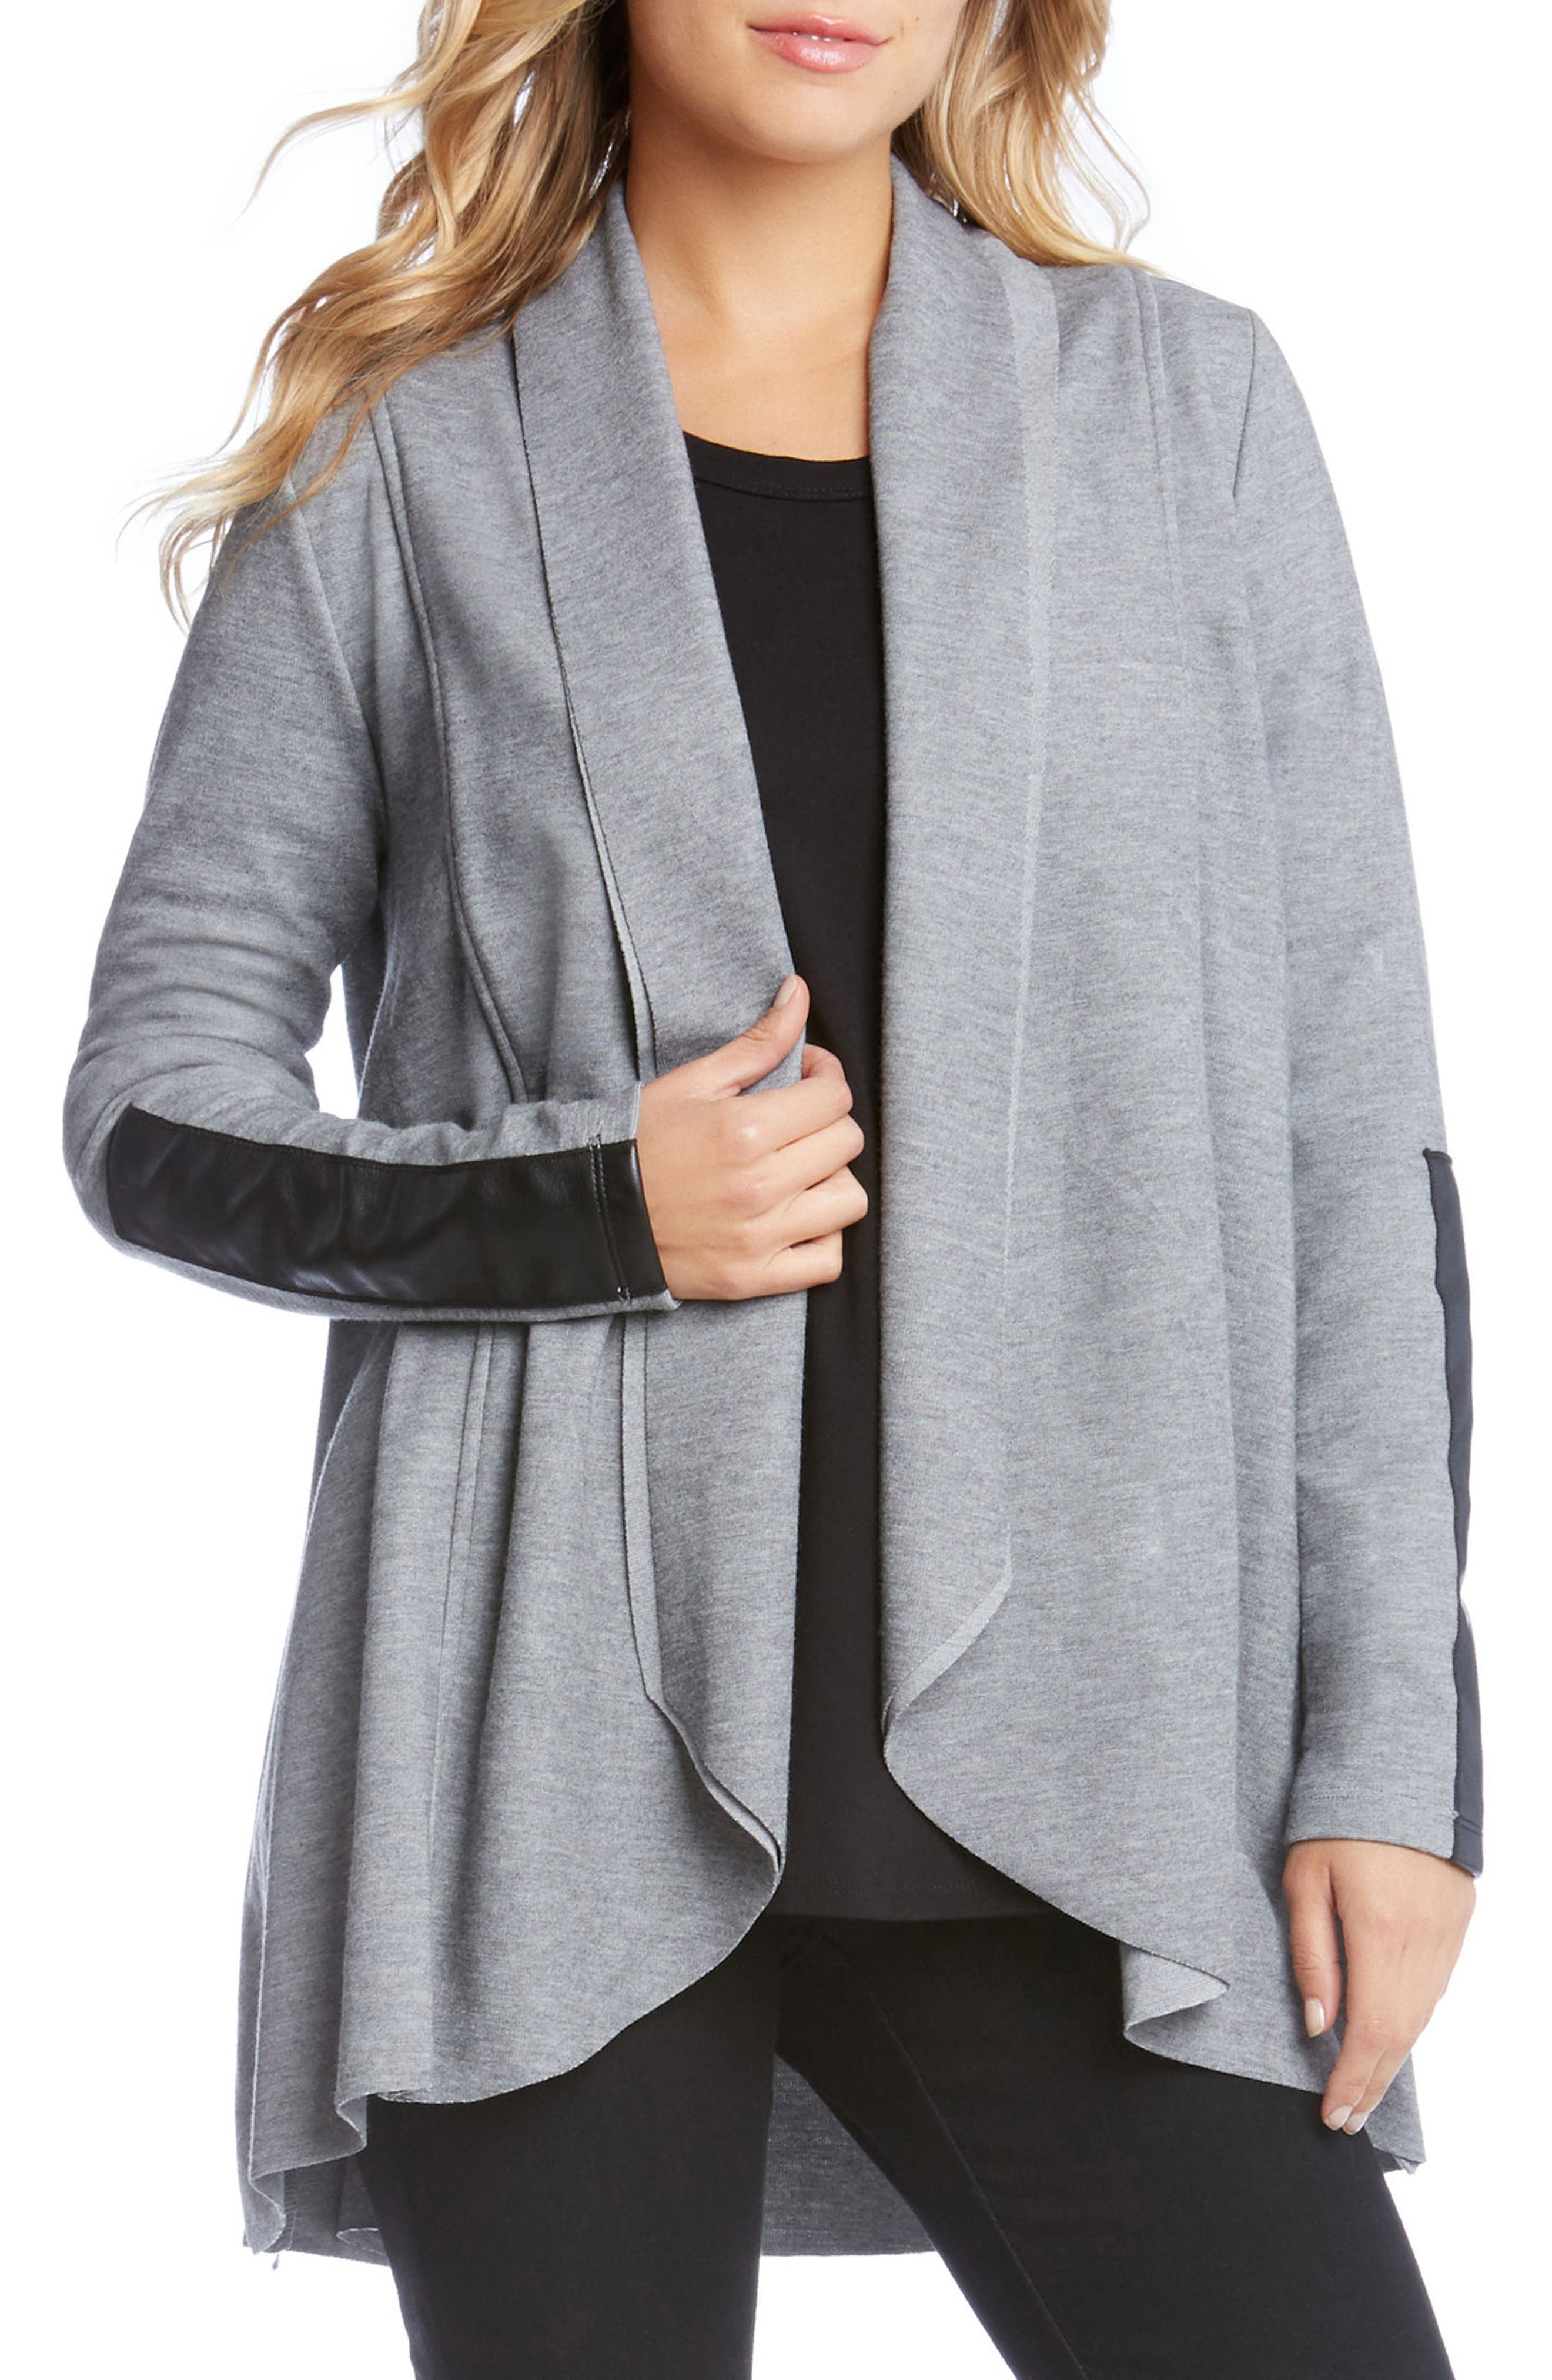 Main Image - Karen Kane Faux Leather Trim Drape Cardigan